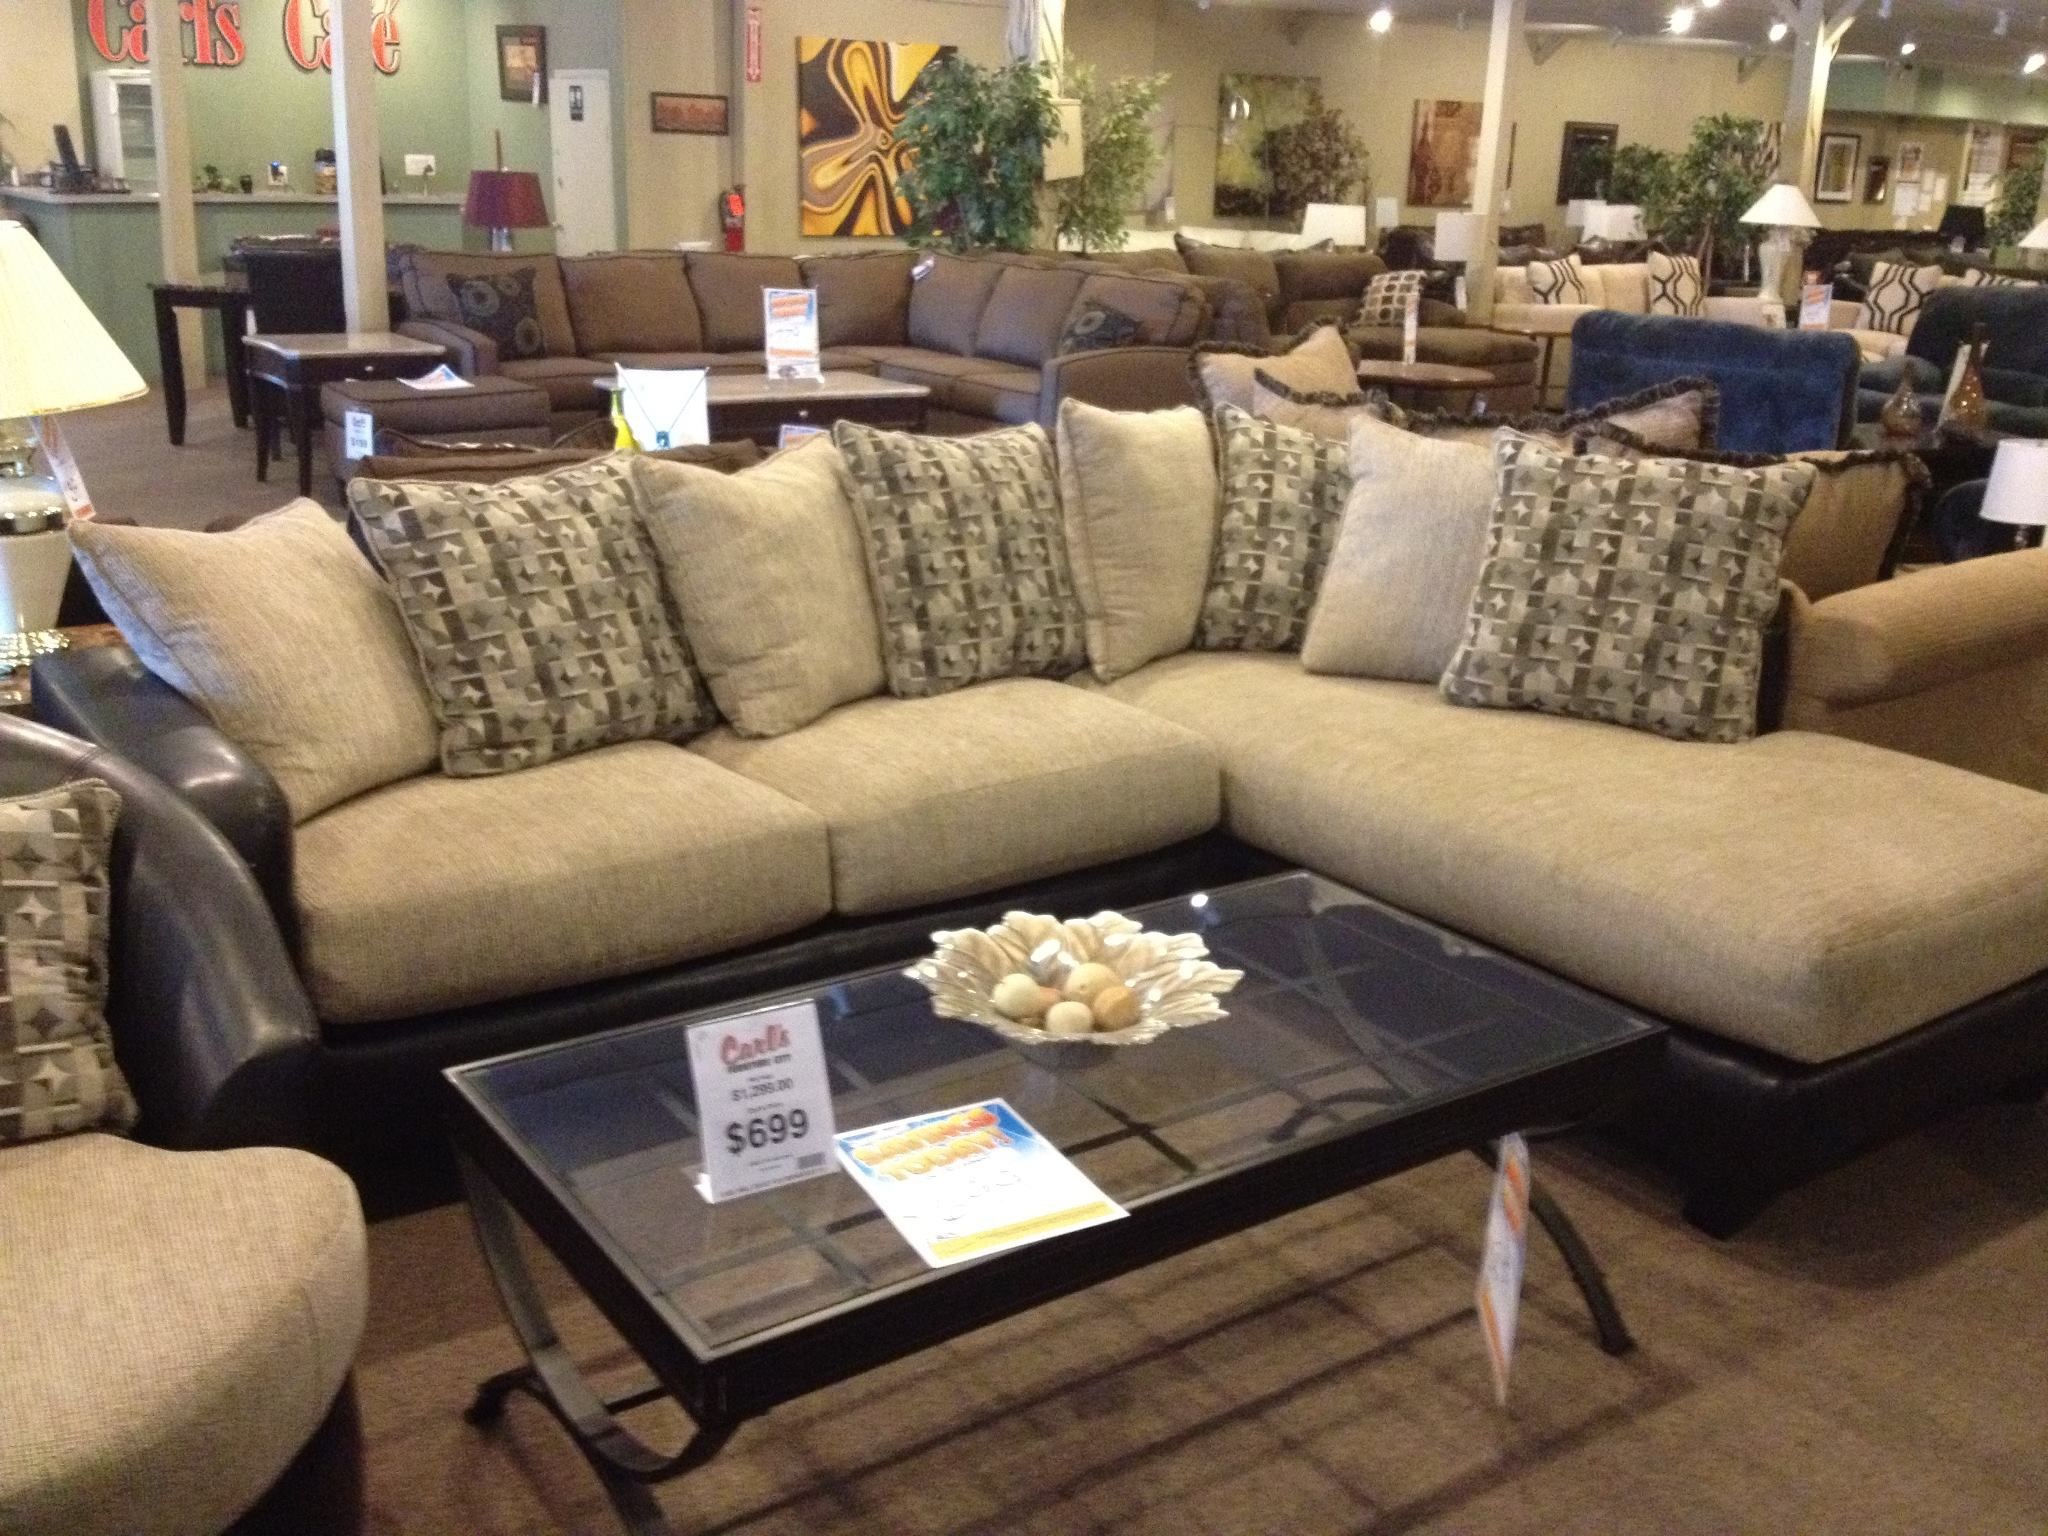 Here is the sectional that is $599 You can have the sectional or